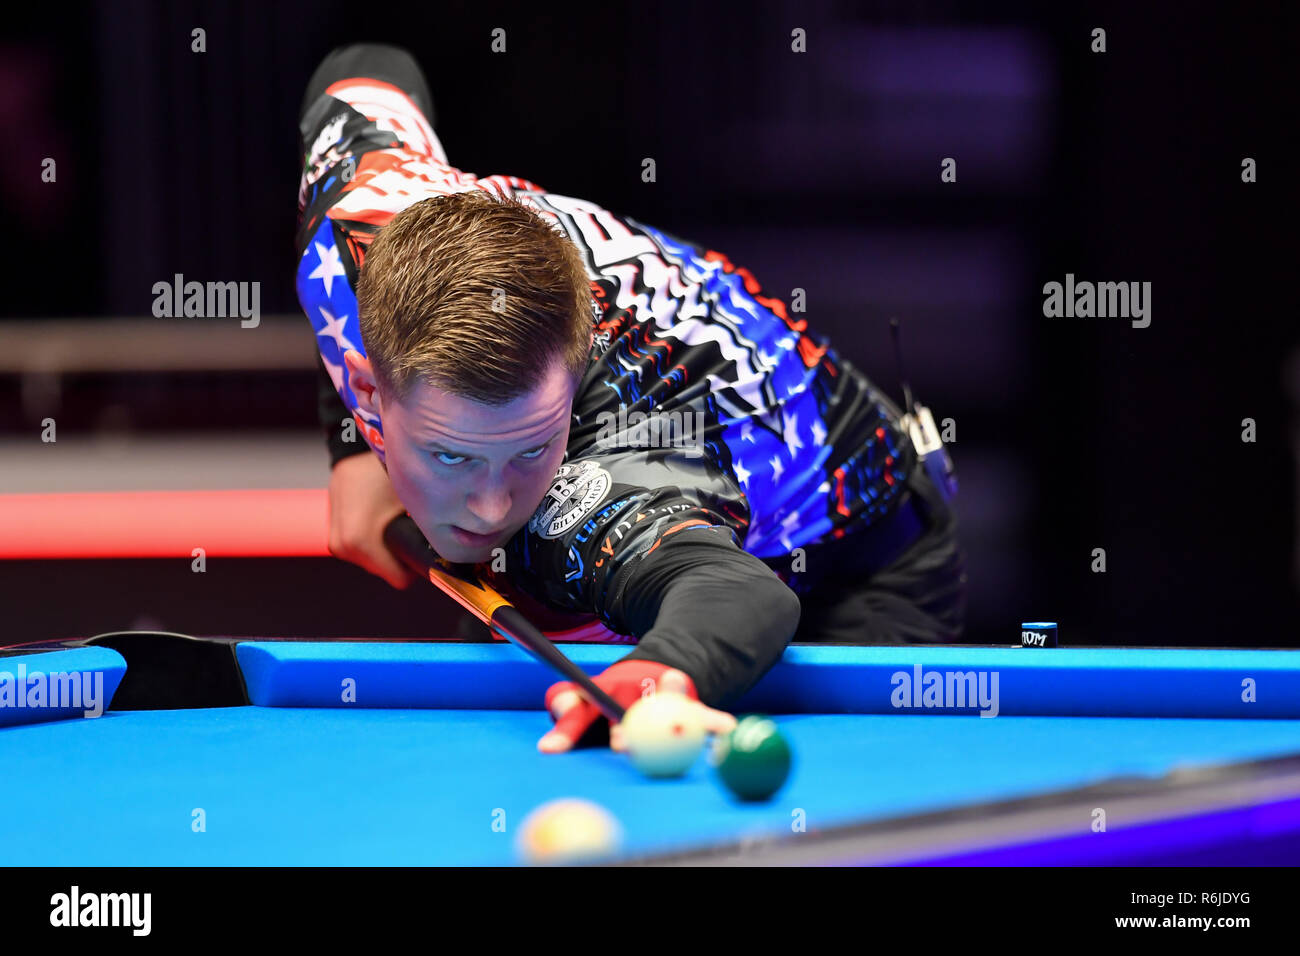 London, UK. 05th Dec, 2018. Skyler Woodward and Tyler Styer of USA during The Partypoker Mosconi Cup 2018: on Day 2 event - Jayson Shaw of Scotland and Eklent Caci of Albania v Skyler Woodward and Tyler Styer of USA at Alexandra Palace on Wednesday, 05 December 2018. LONDON, ENGLAND. (Editorial use only, license required for commercial use. No use in betting, games or a single club/league/player publications.) Credit: Taka G Wu/Alamy News Credit: Taka Wu/Alamy Live News - Stock Image